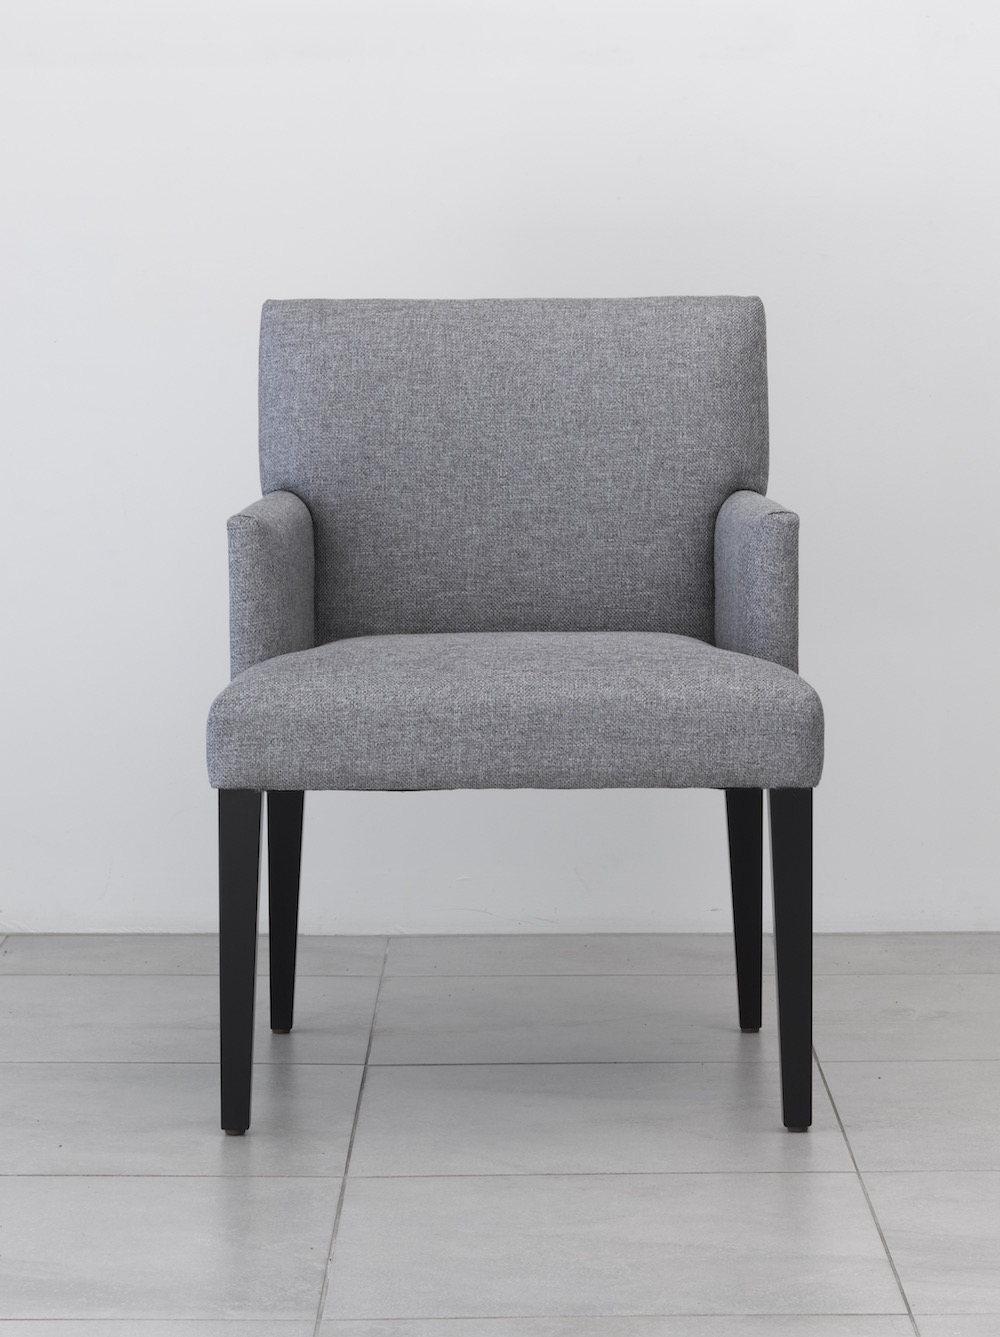 Cubist Versatile Chair With Tapered Legs James Salmond